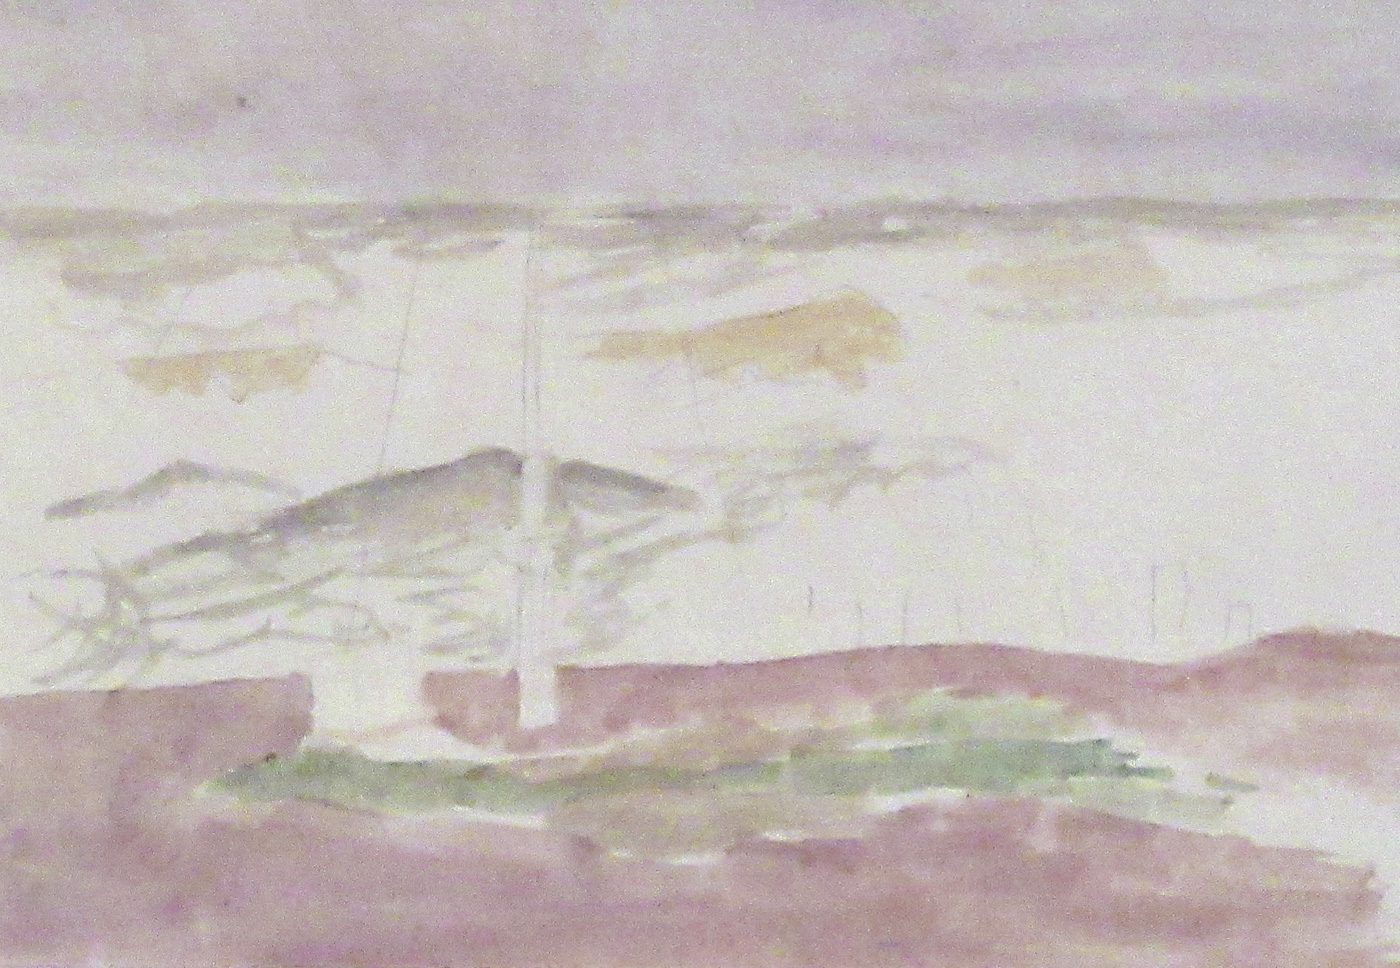 Beach, Flagpole Sketch by  Mary Potter OBE (1900-1981)